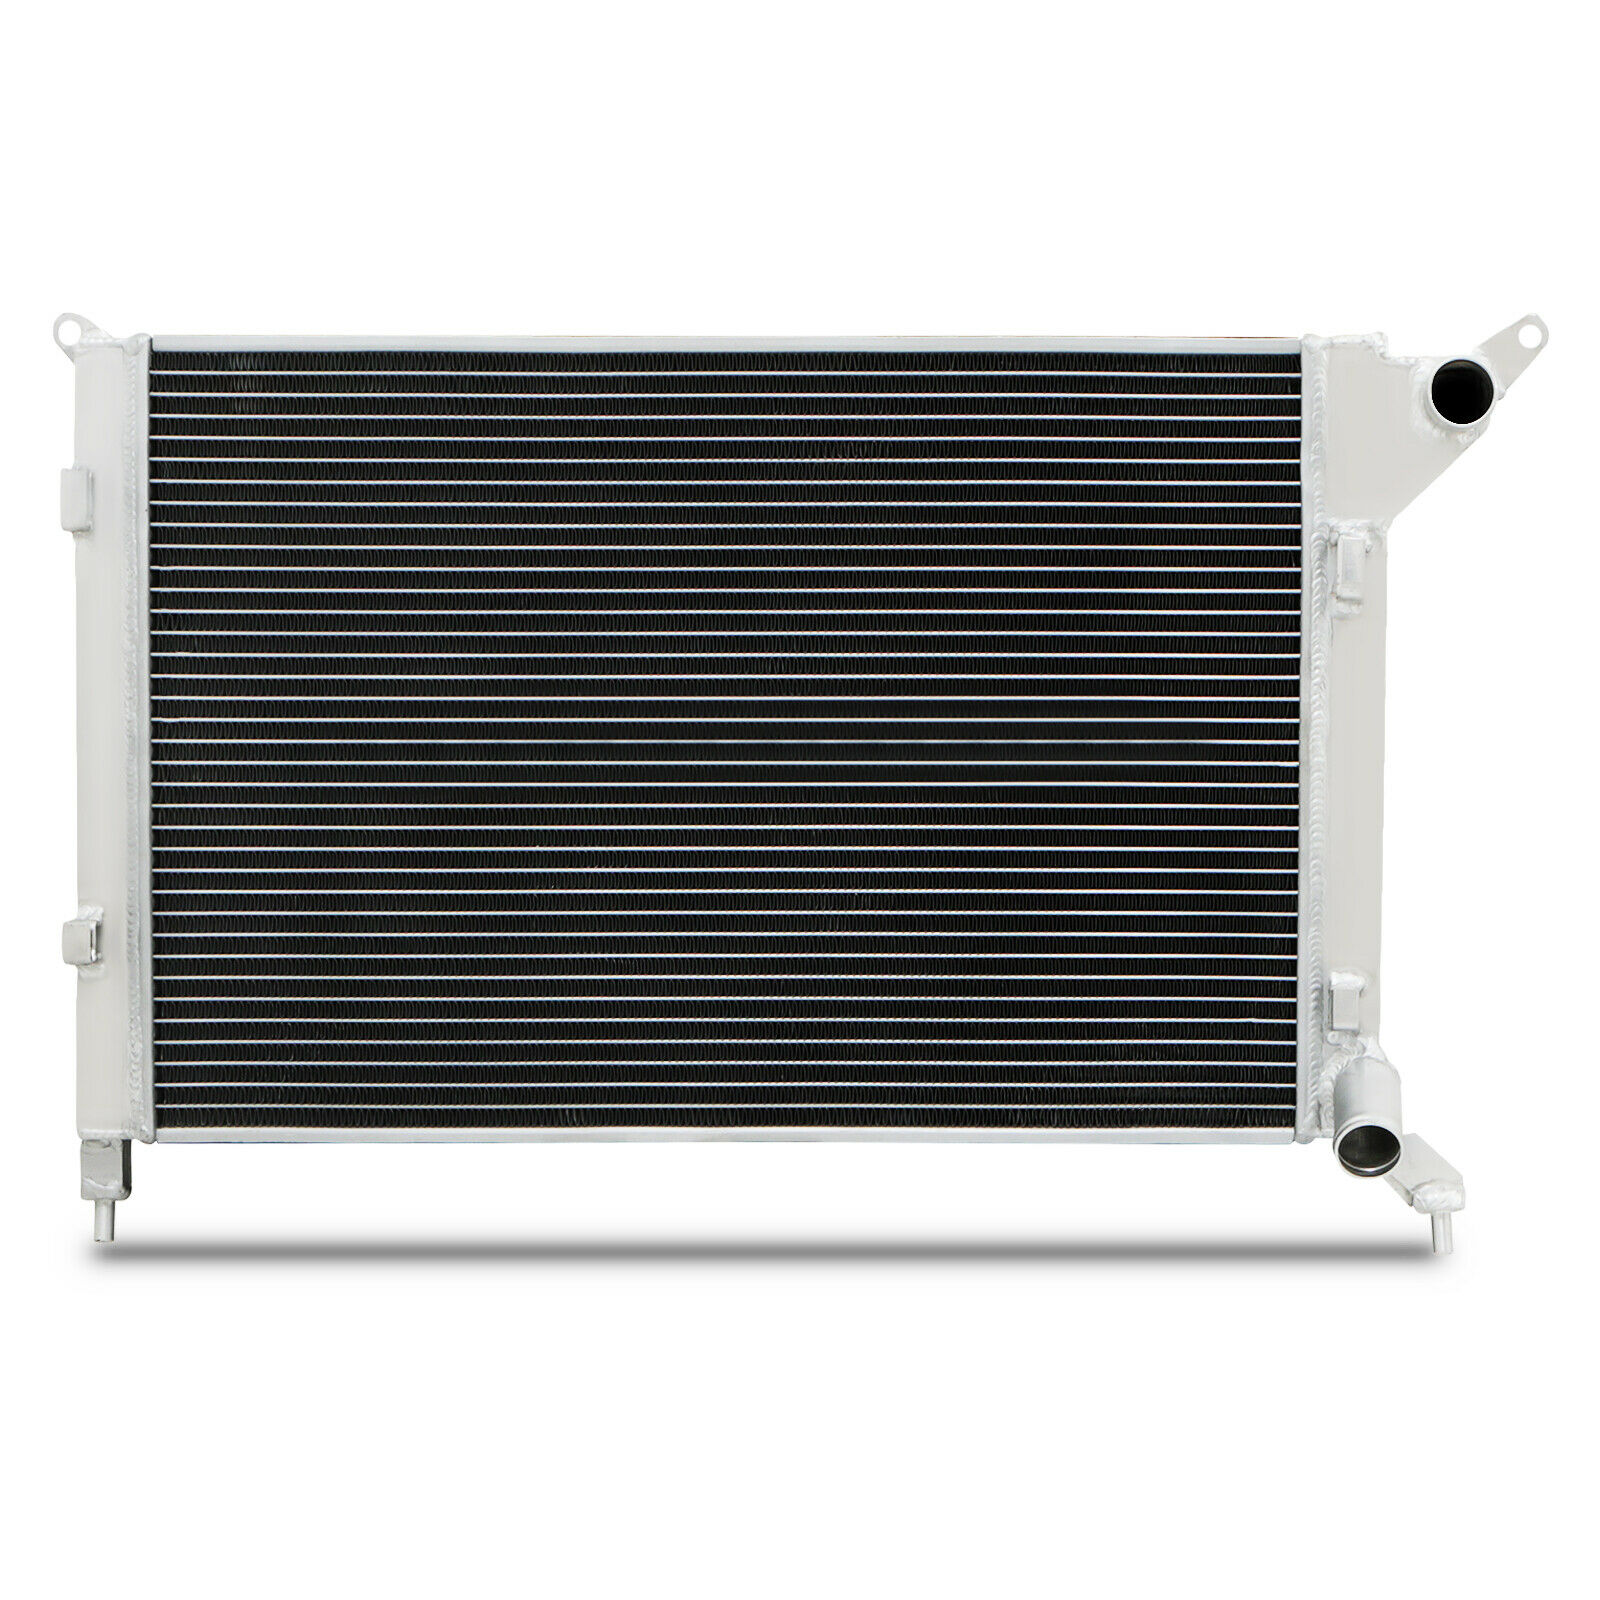 40mm HIGH FLOW ALLOY RACE RADIATOR RAD FOR TOYOTA STARLET EP82 EP91 1.3 TURBO